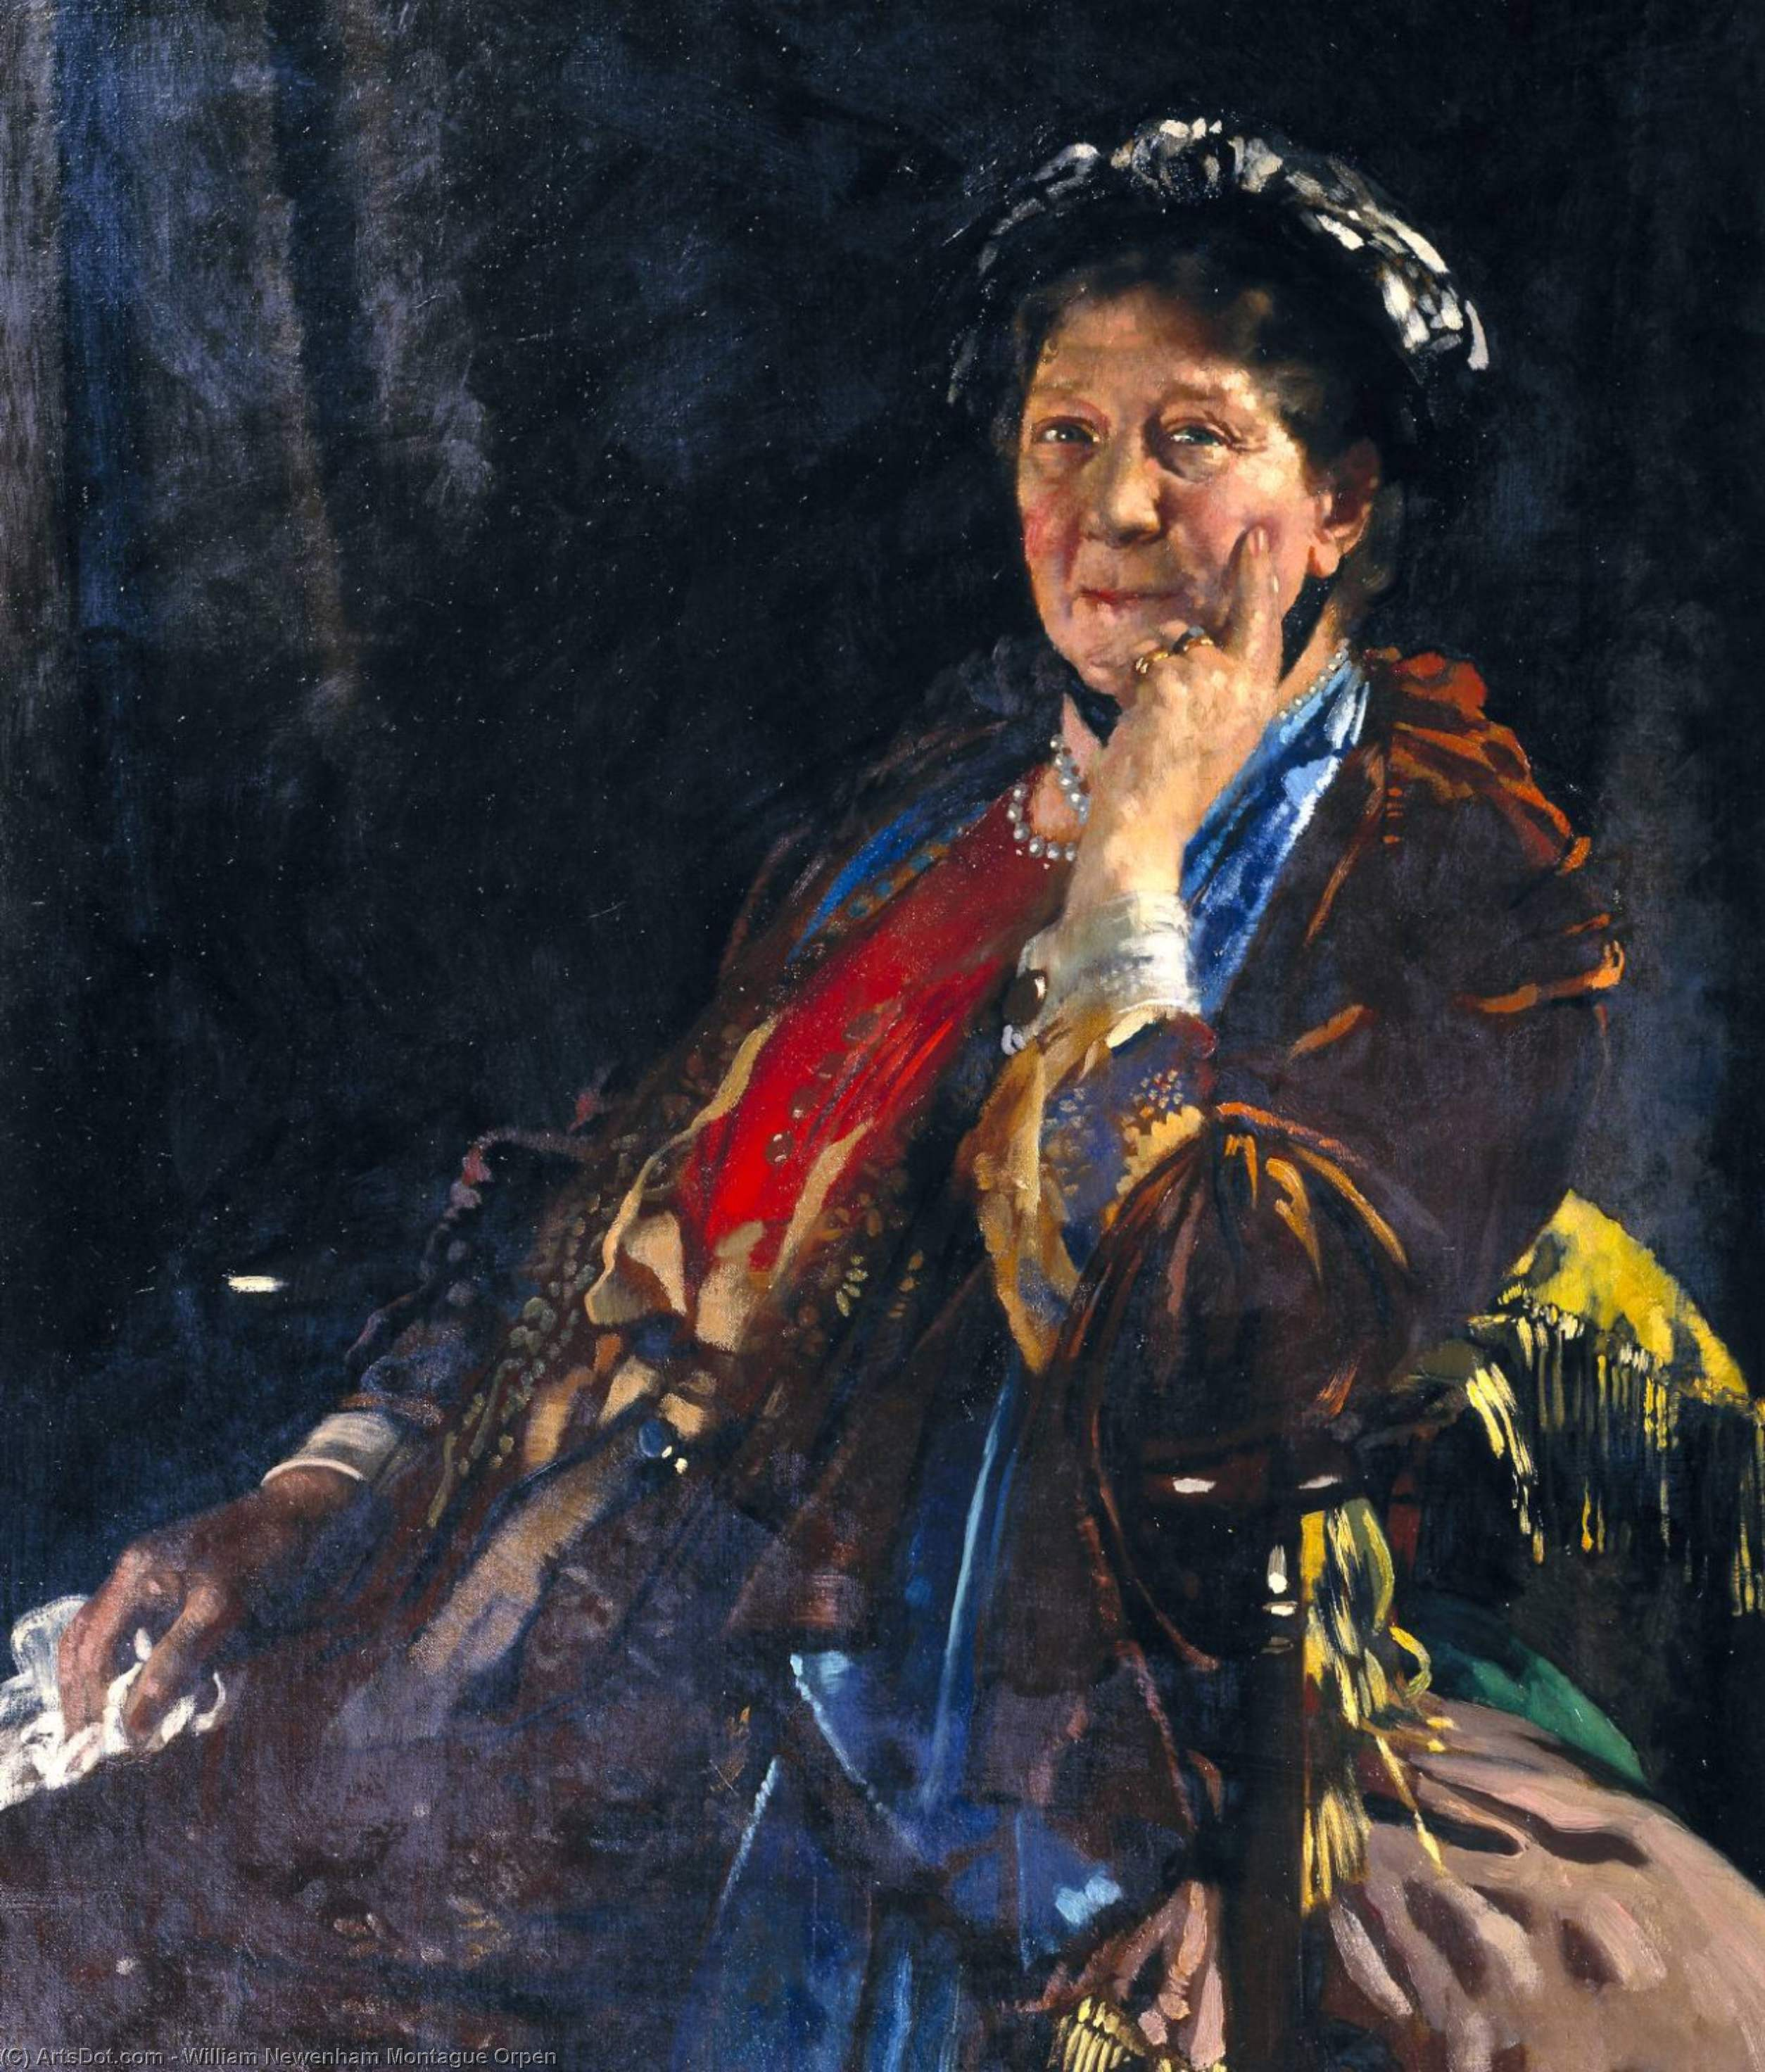 Dama madge kendal, óleo sobre lienzo de William Newenham Montague Orpen (1878-1931, Ireland)